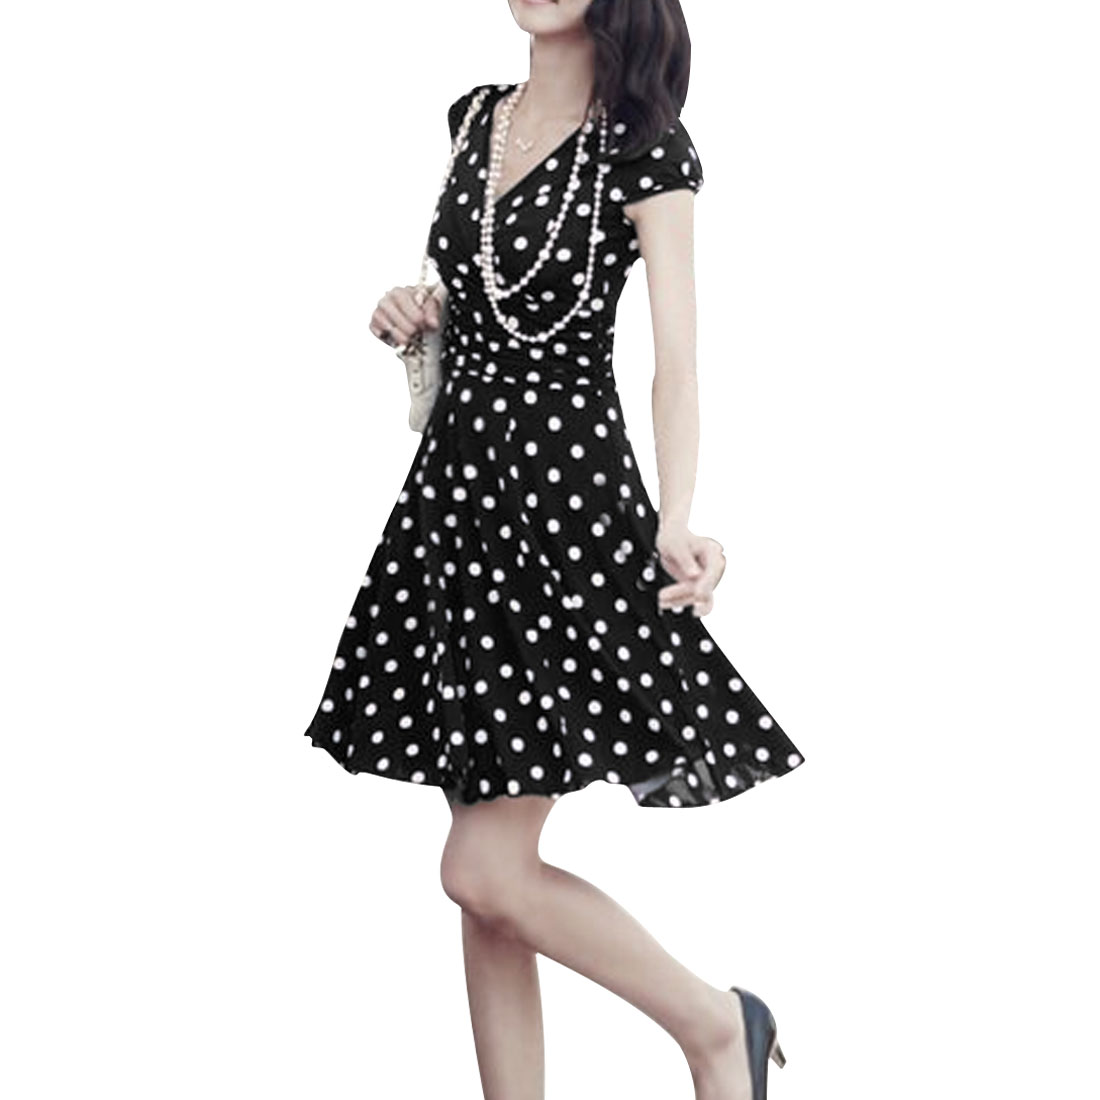 Ladies Dots Prints Above Knee Chiffon Concealed Zipper Side Dress Black XS